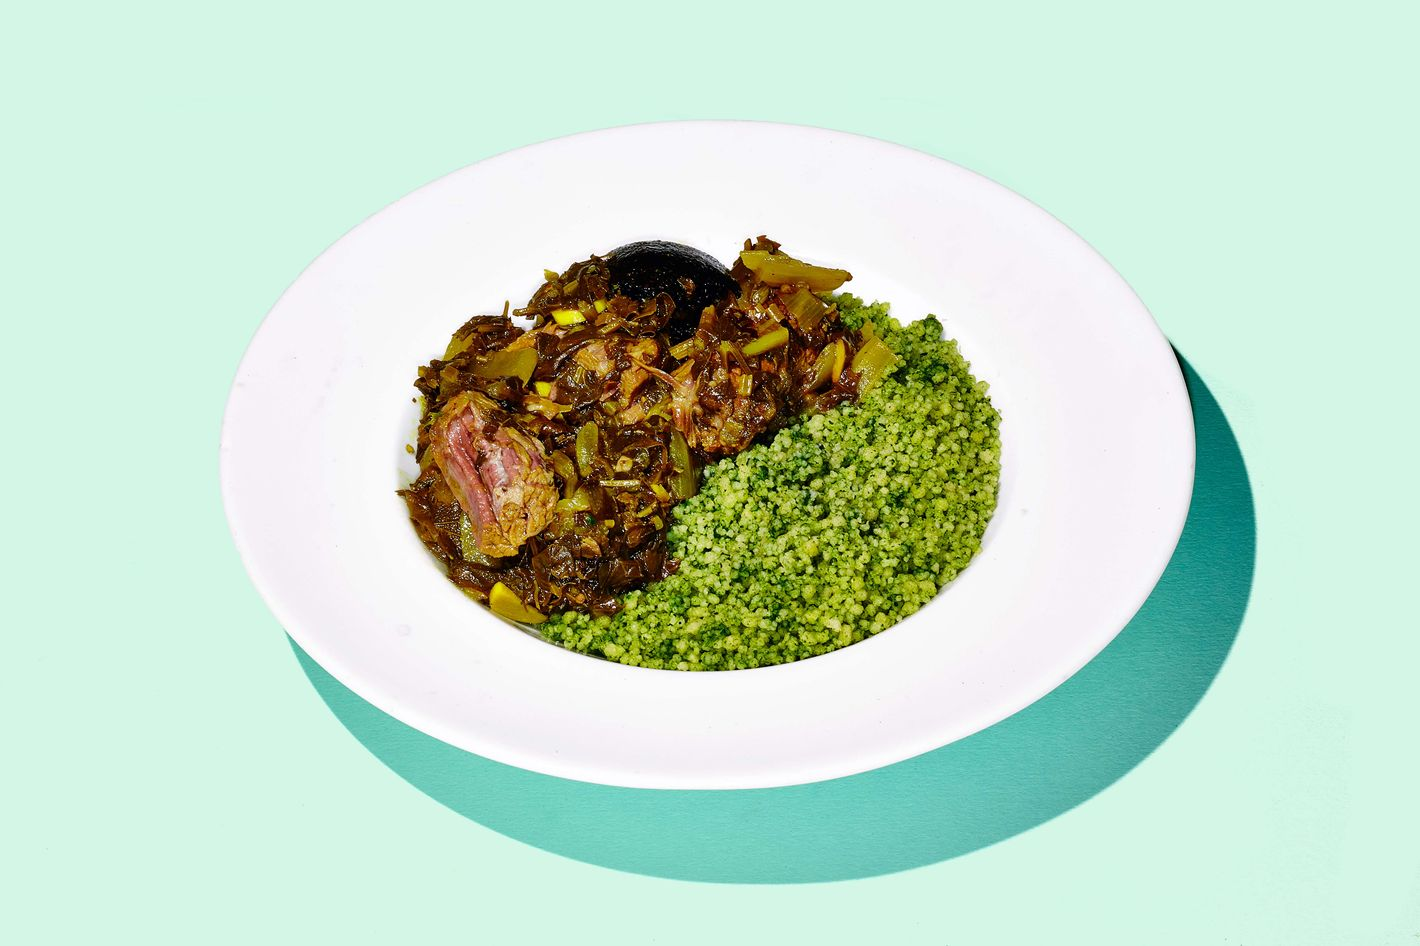 Slow-cooked beef cheek with couscous.